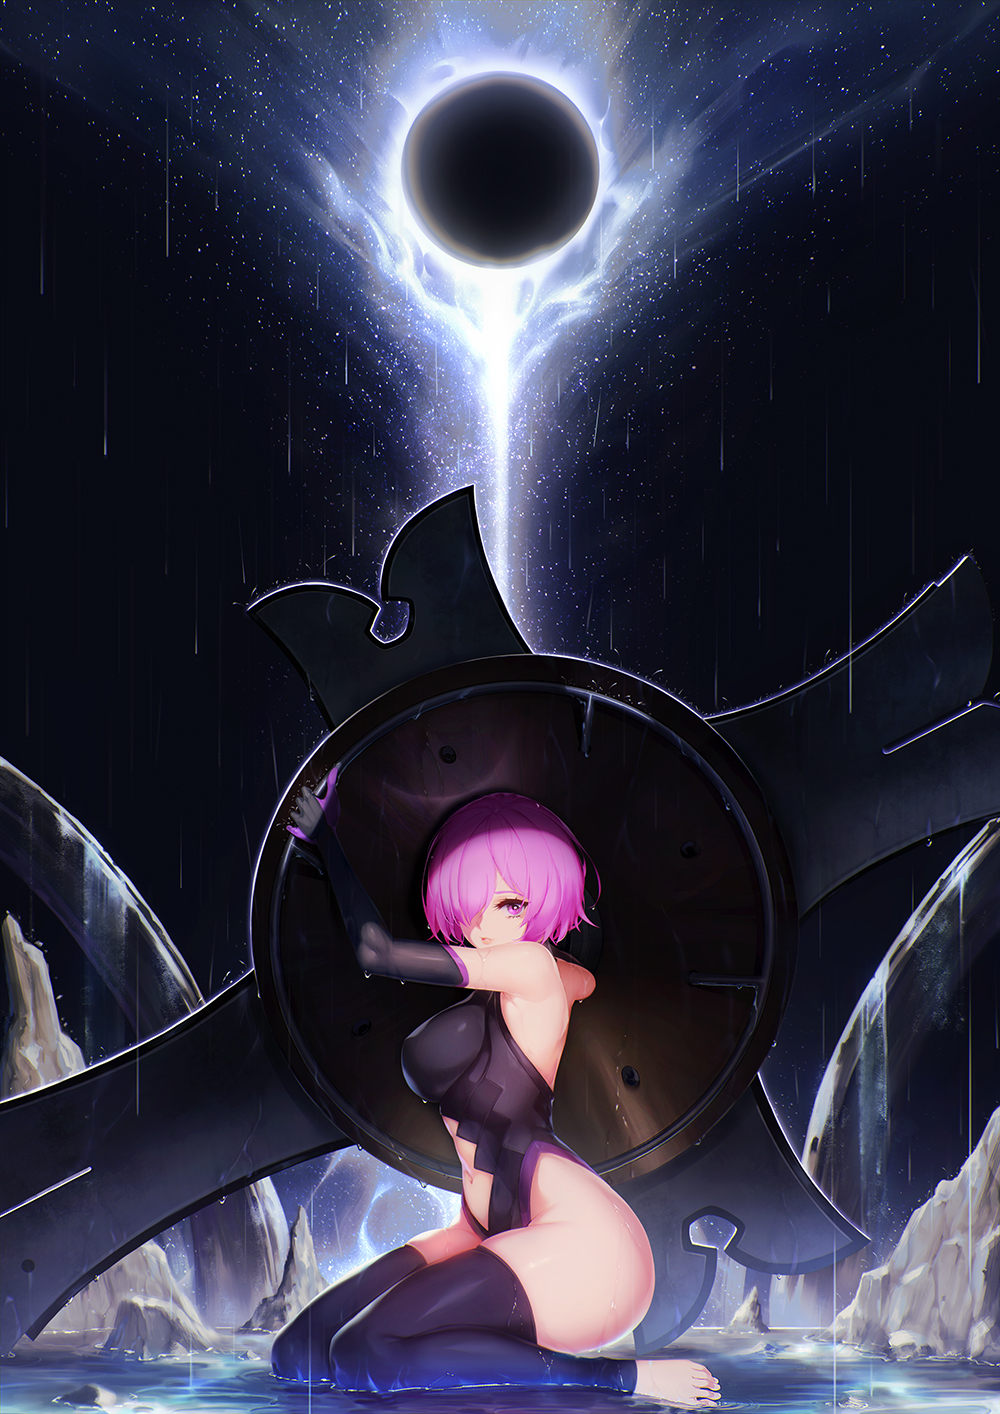 1girl bare_shoulders black_legwear blueorca breasts commentary fate/grand_order fate_(series) hair_over_one_eye highres holding_shield kneeling looking_at_viewer mash_kyrielight moon navel night outdoors rain shield short_hair solo thigh-highs toeless_legwear toes violet_eyes